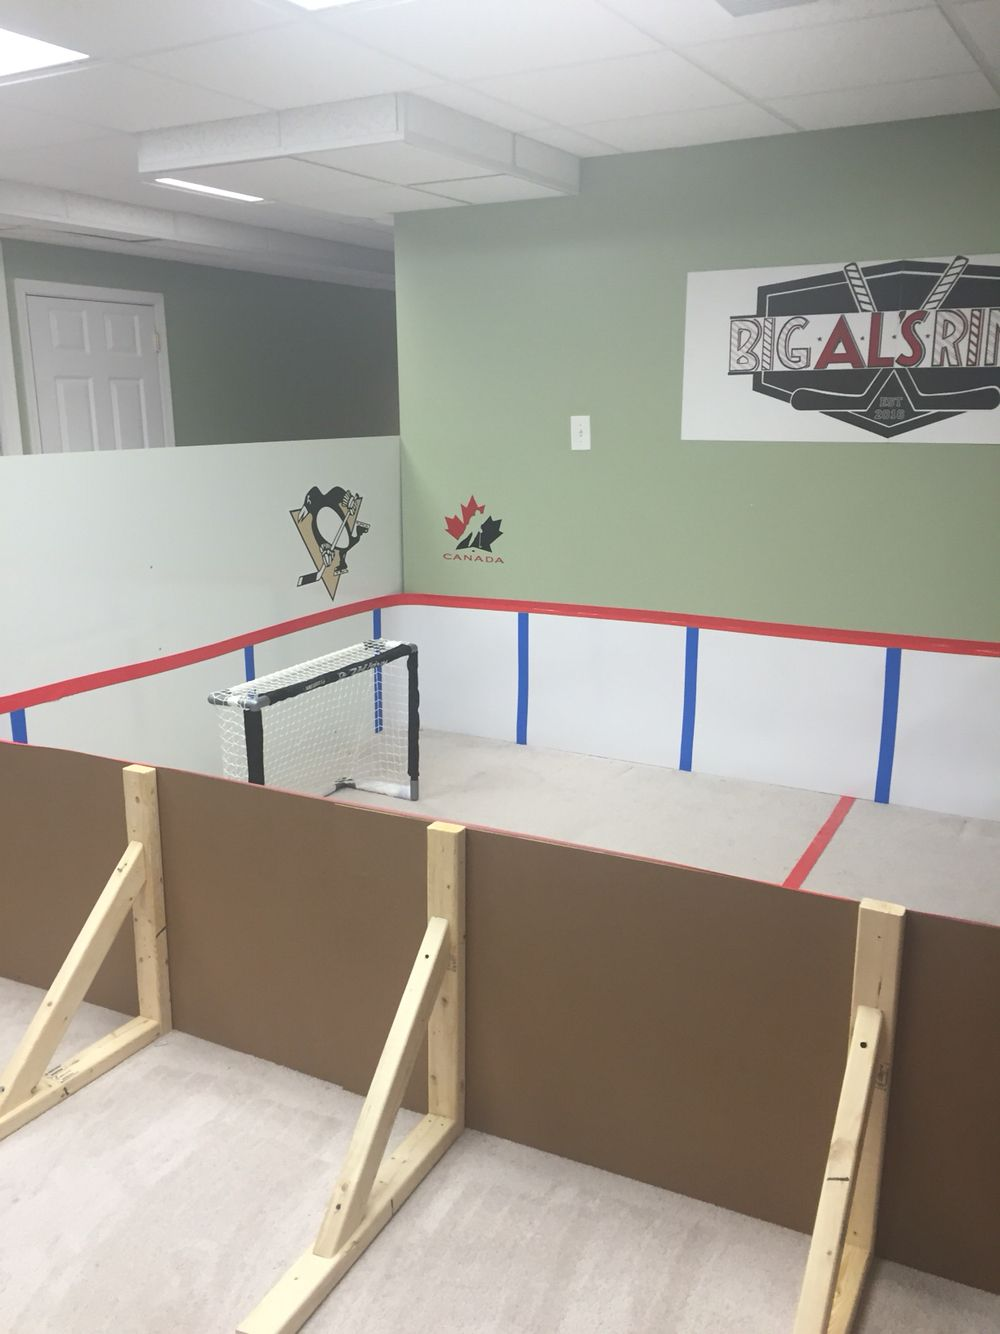 Mini Knee Hockey Rink Made By Mom Using Poster Board And